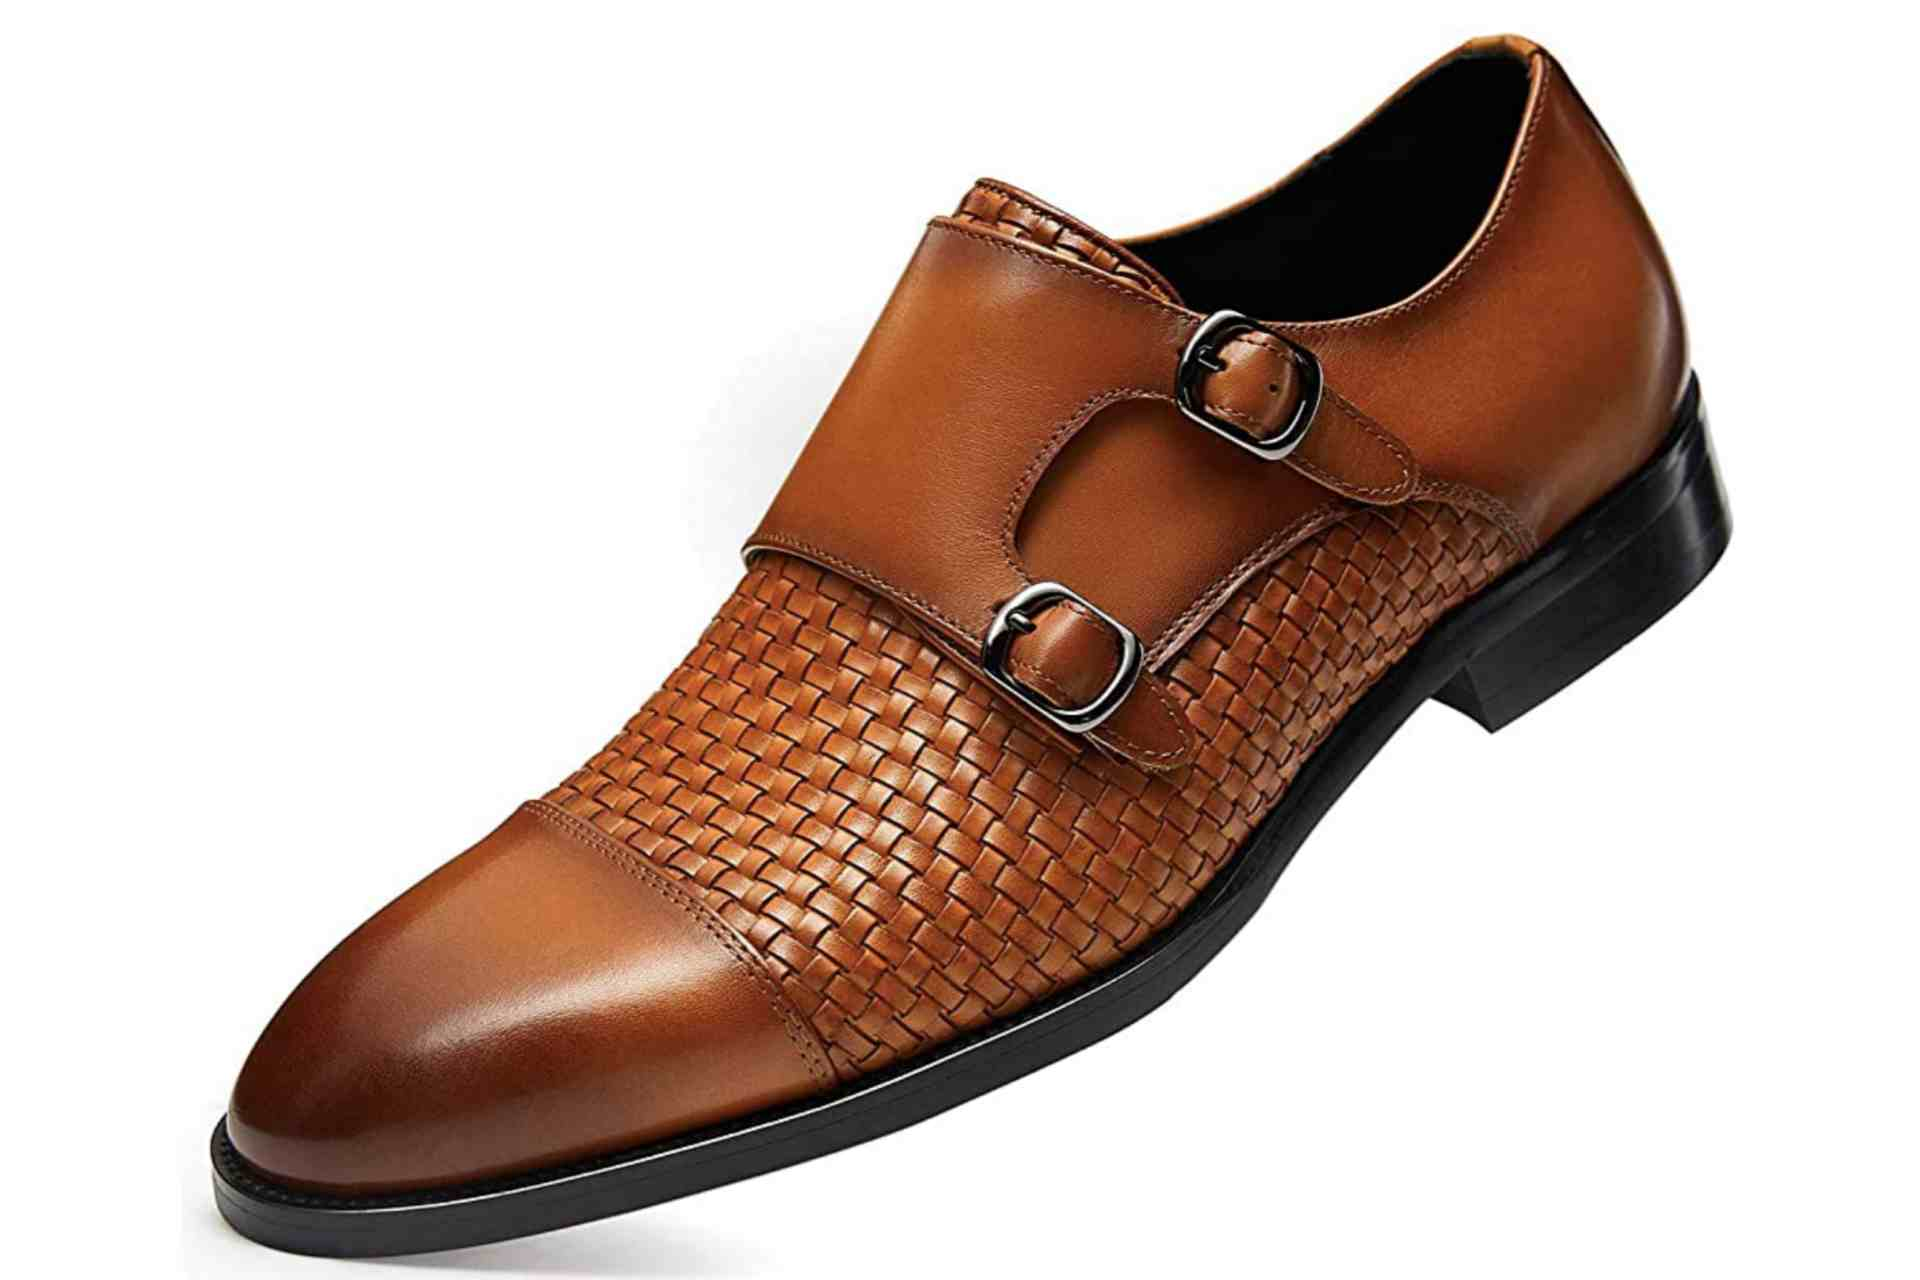 High-quality brown leather Monk Strap shoes for men